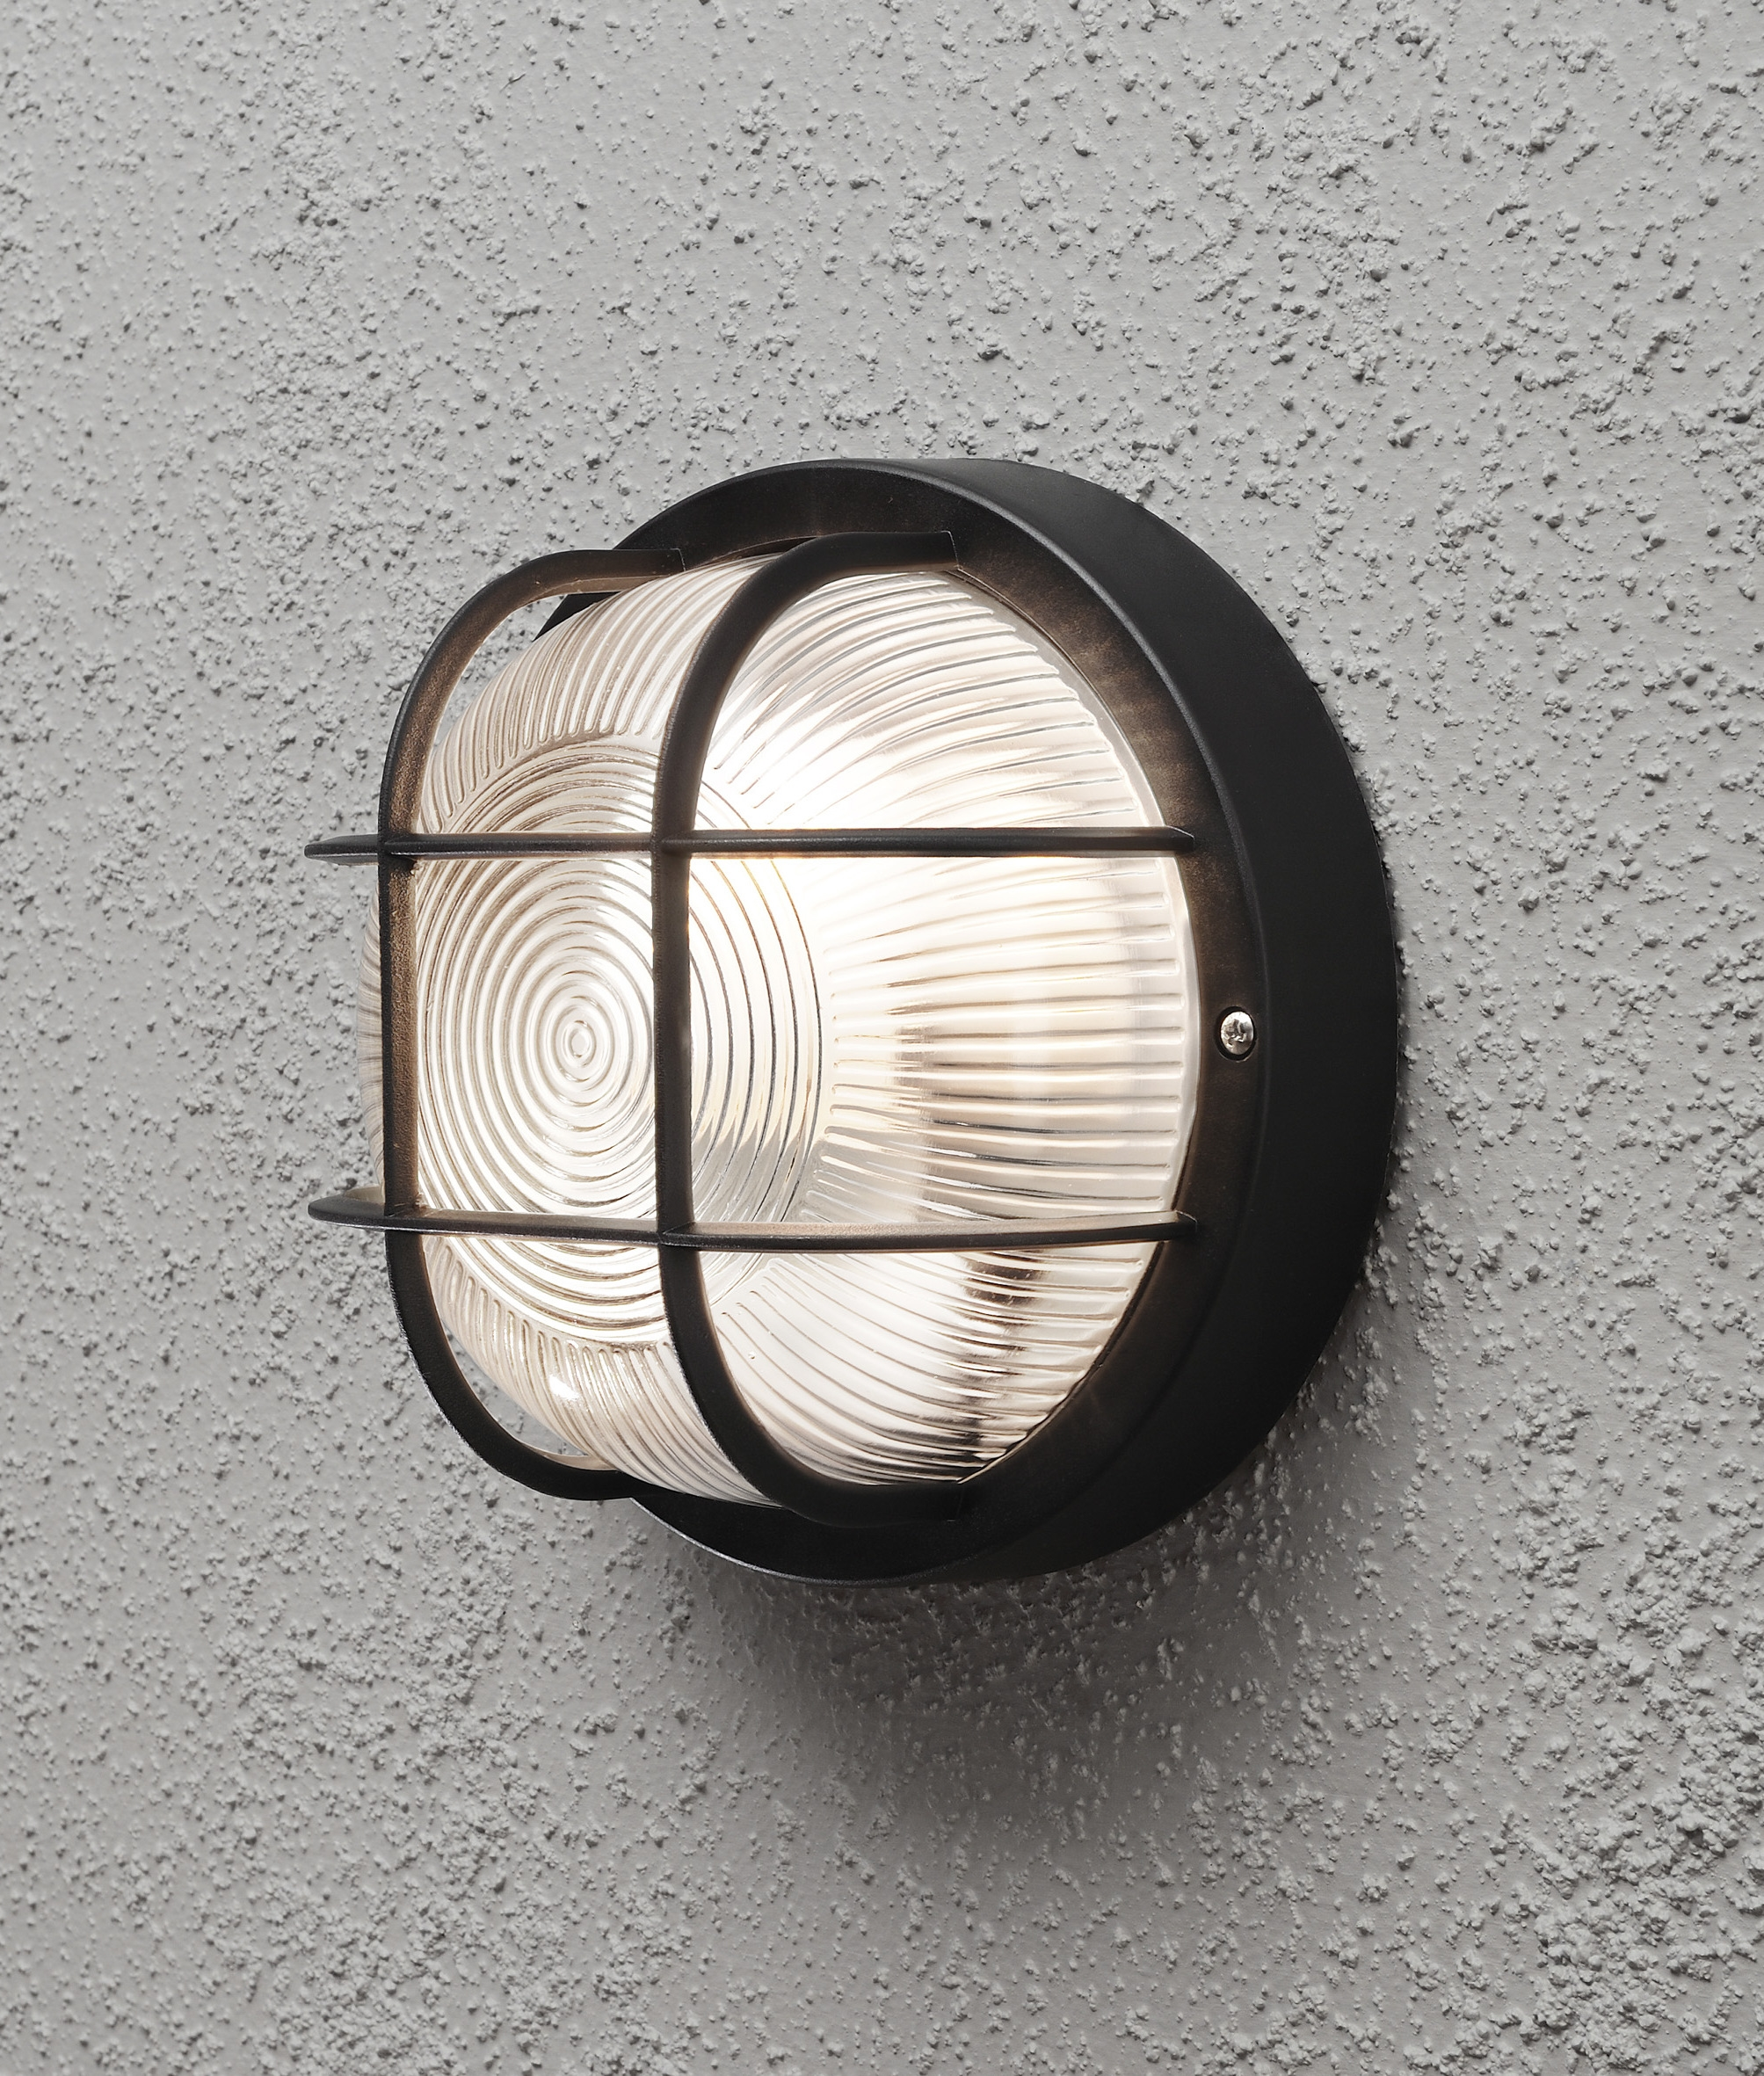 Caged bulkhead exterior wall light ip44 rated